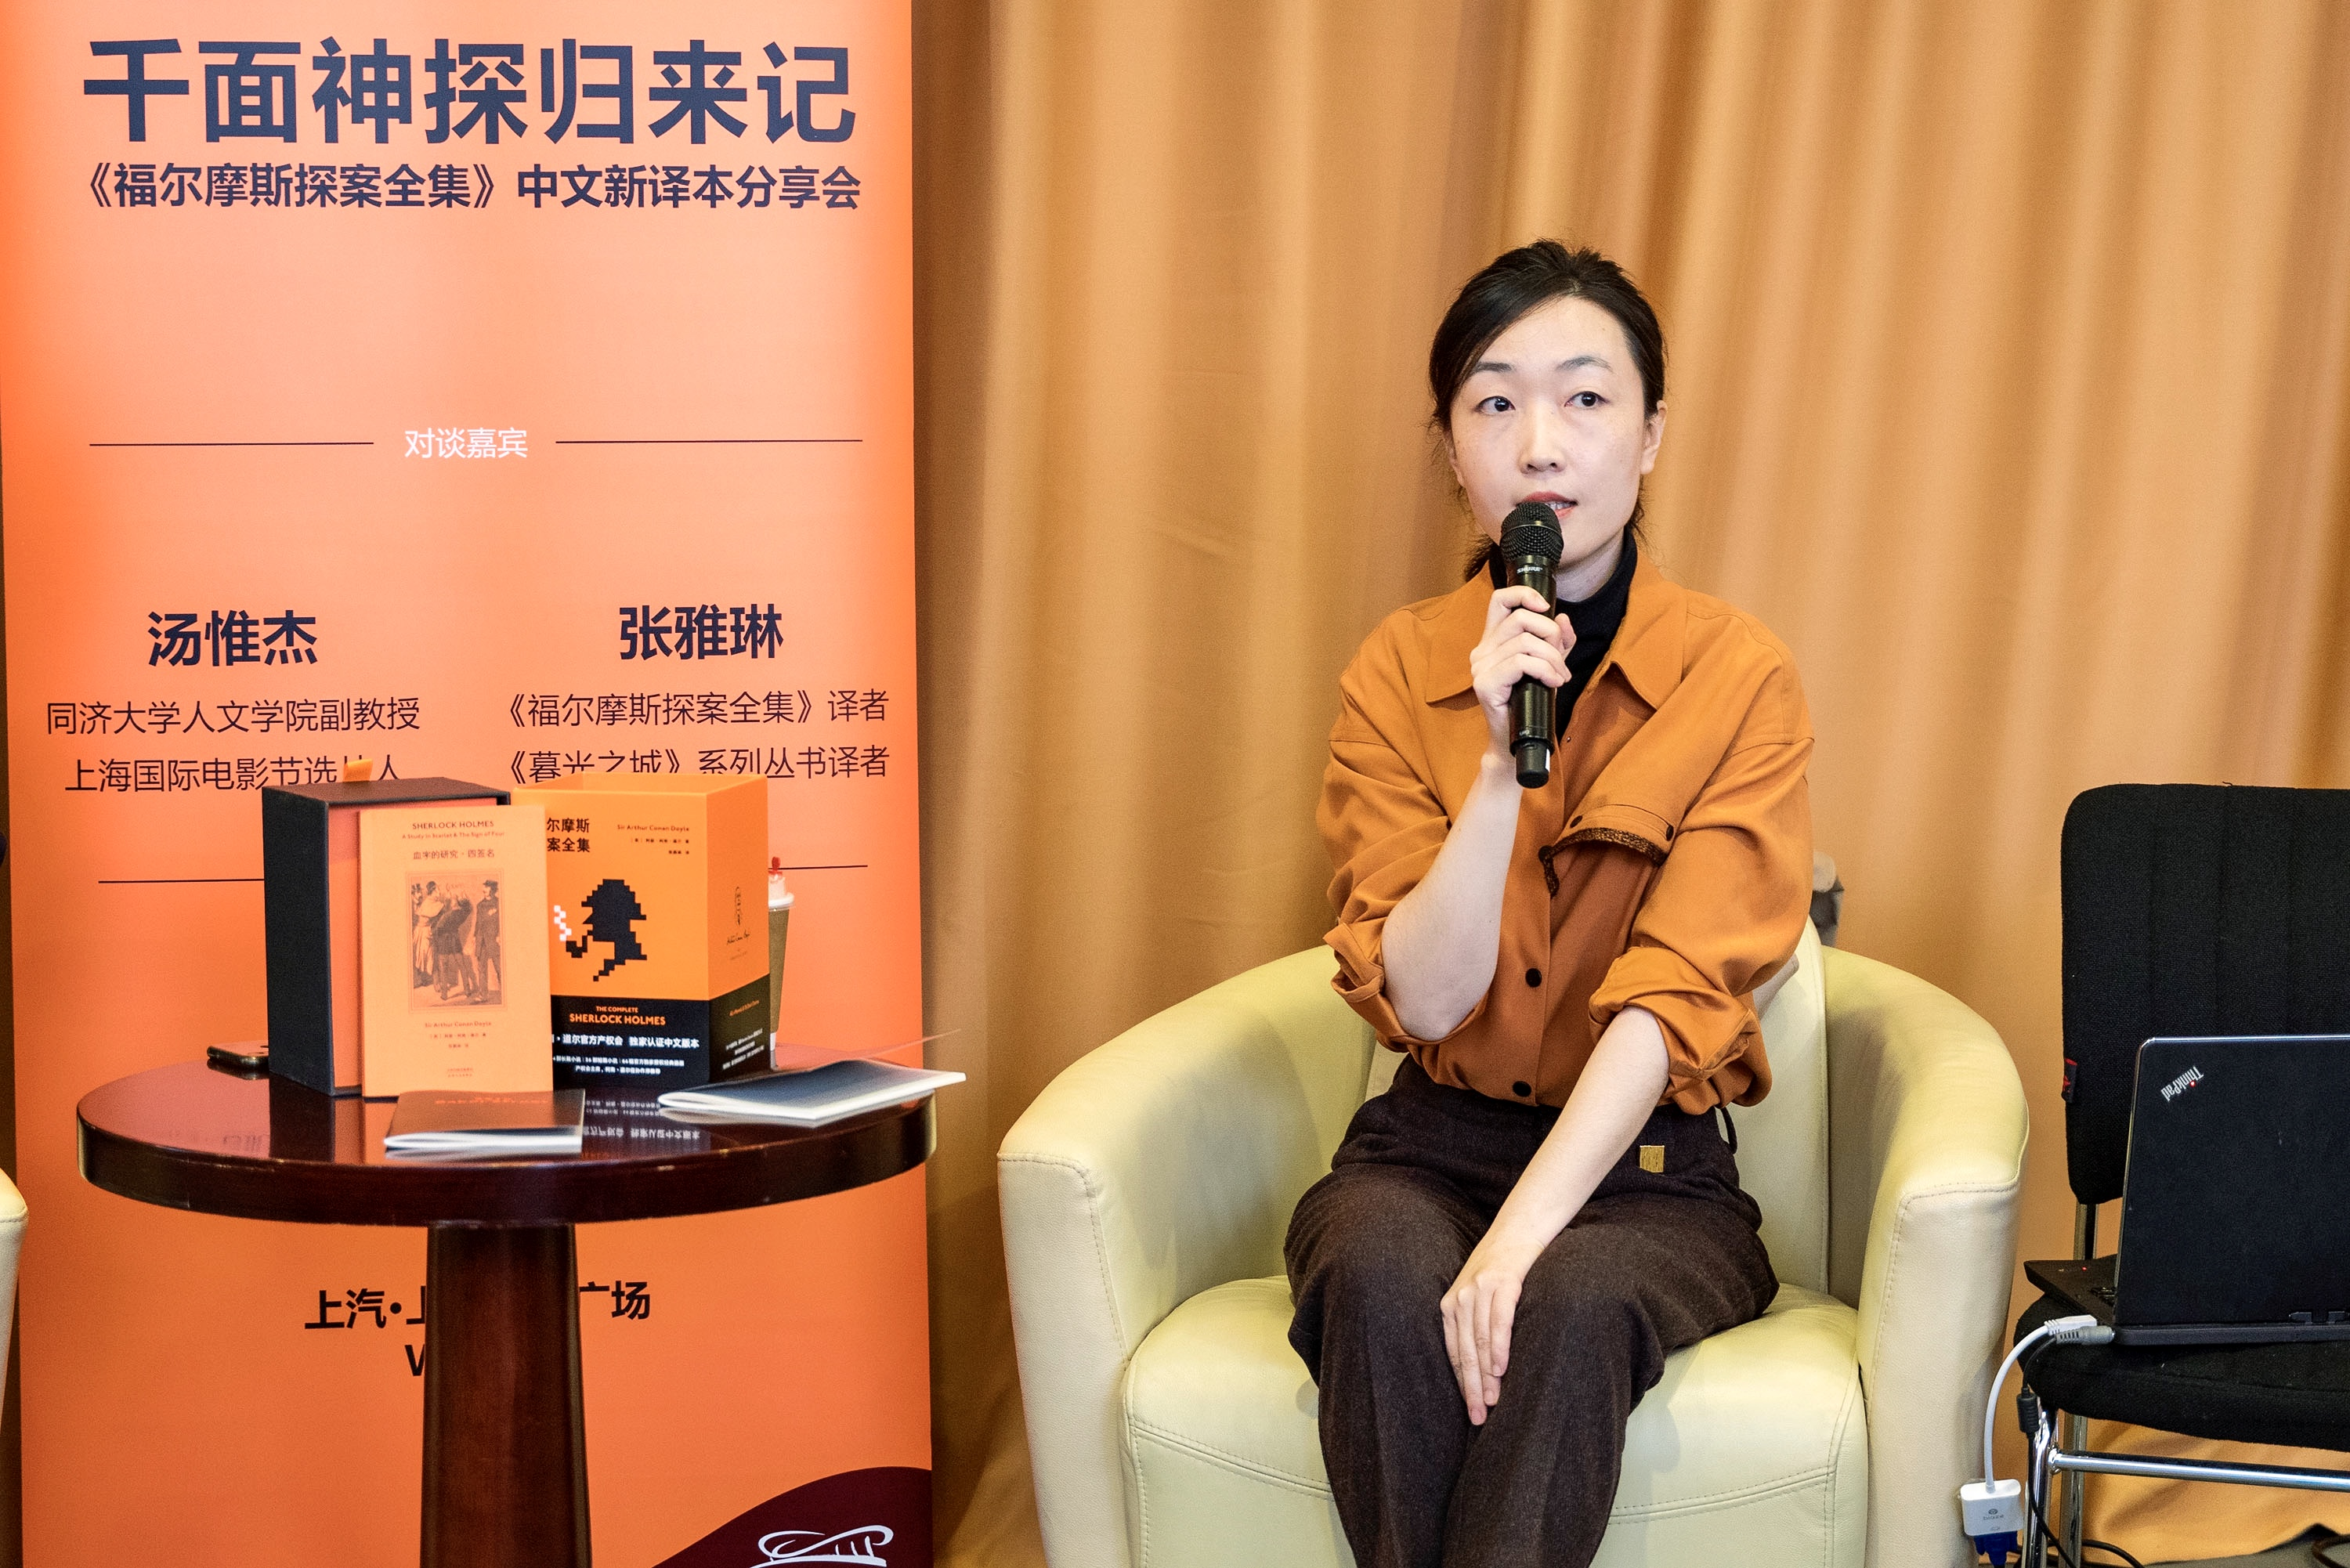 The Shanghai Launch Event For The Complete Sherlock Holmes